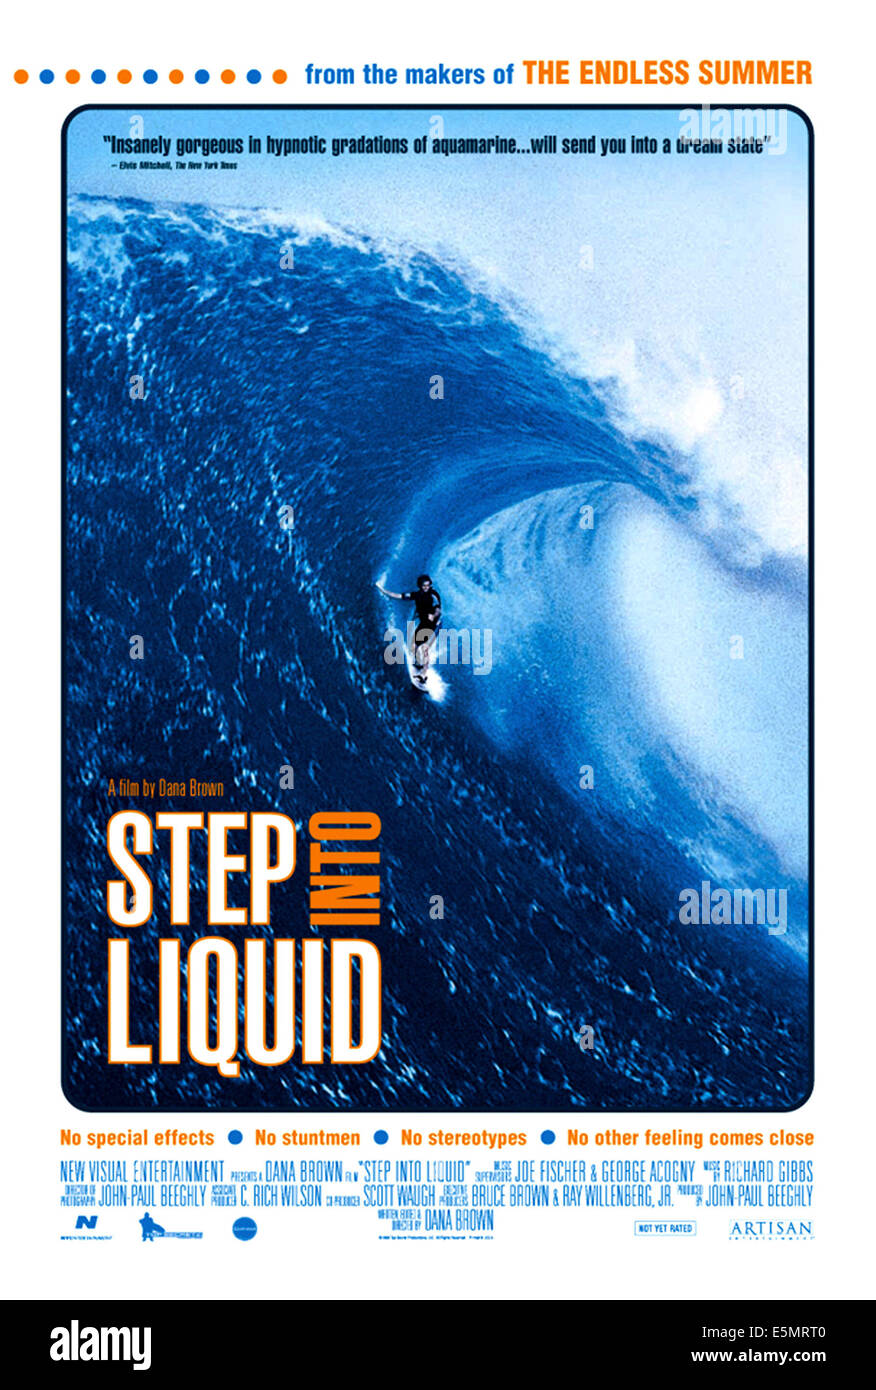 STEP INTO LIQUID, 2003 - Stock Image